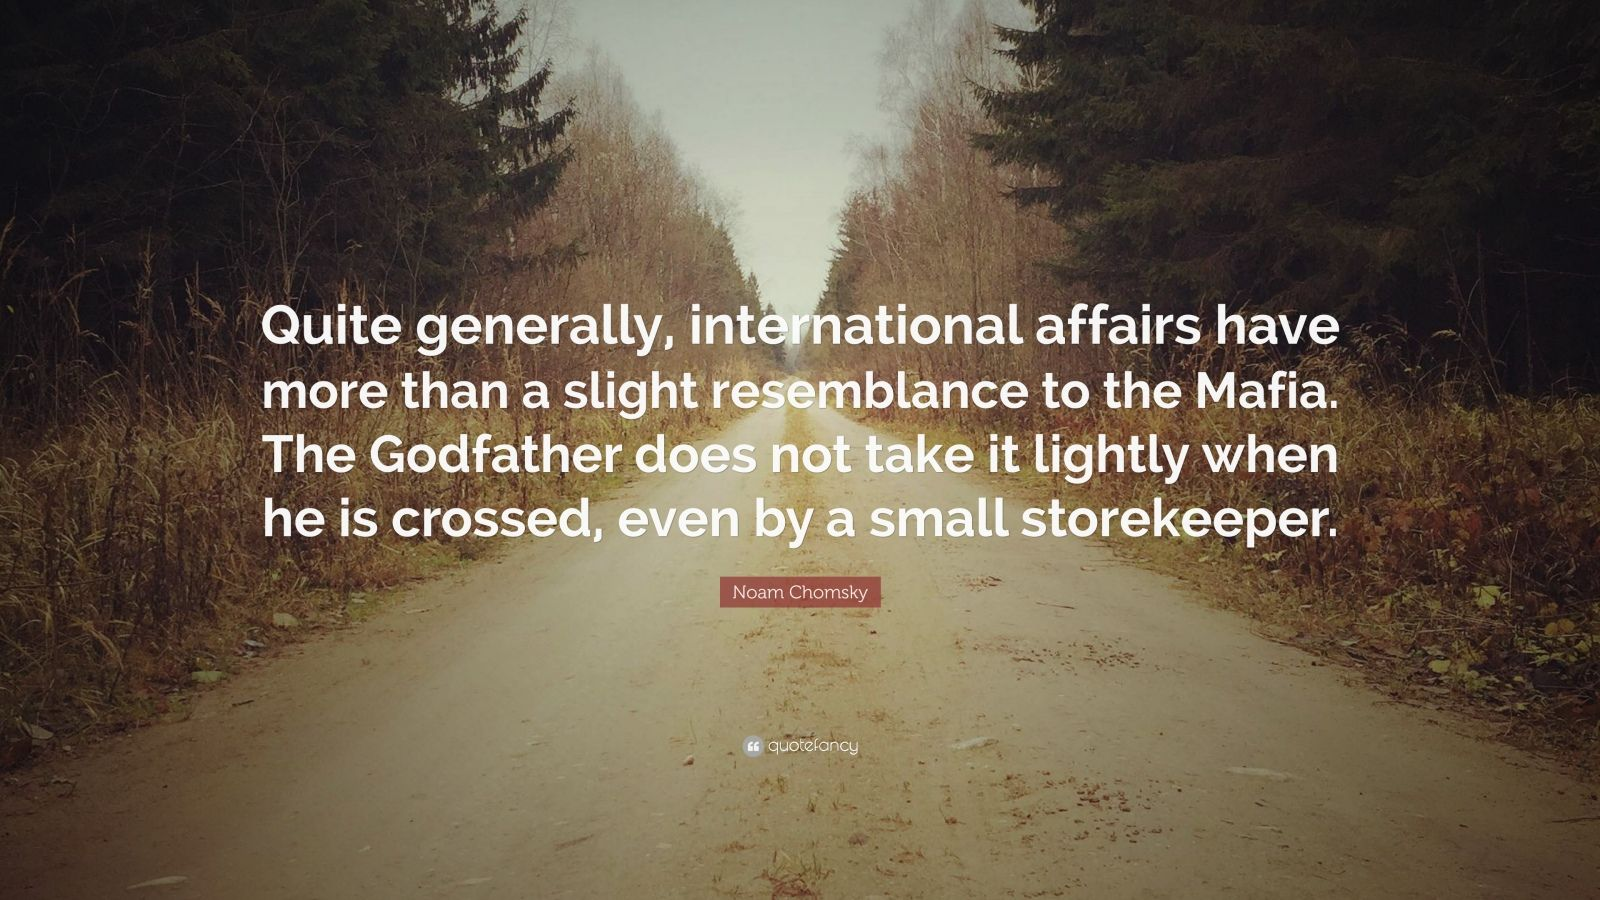 """Noam Chomsky Quote: """"Quite generally, international affairs have more than a slight resemblance to the Mafia. The Godfather does not take it lightly when he is crossed, even by a small storekeeper."""""""